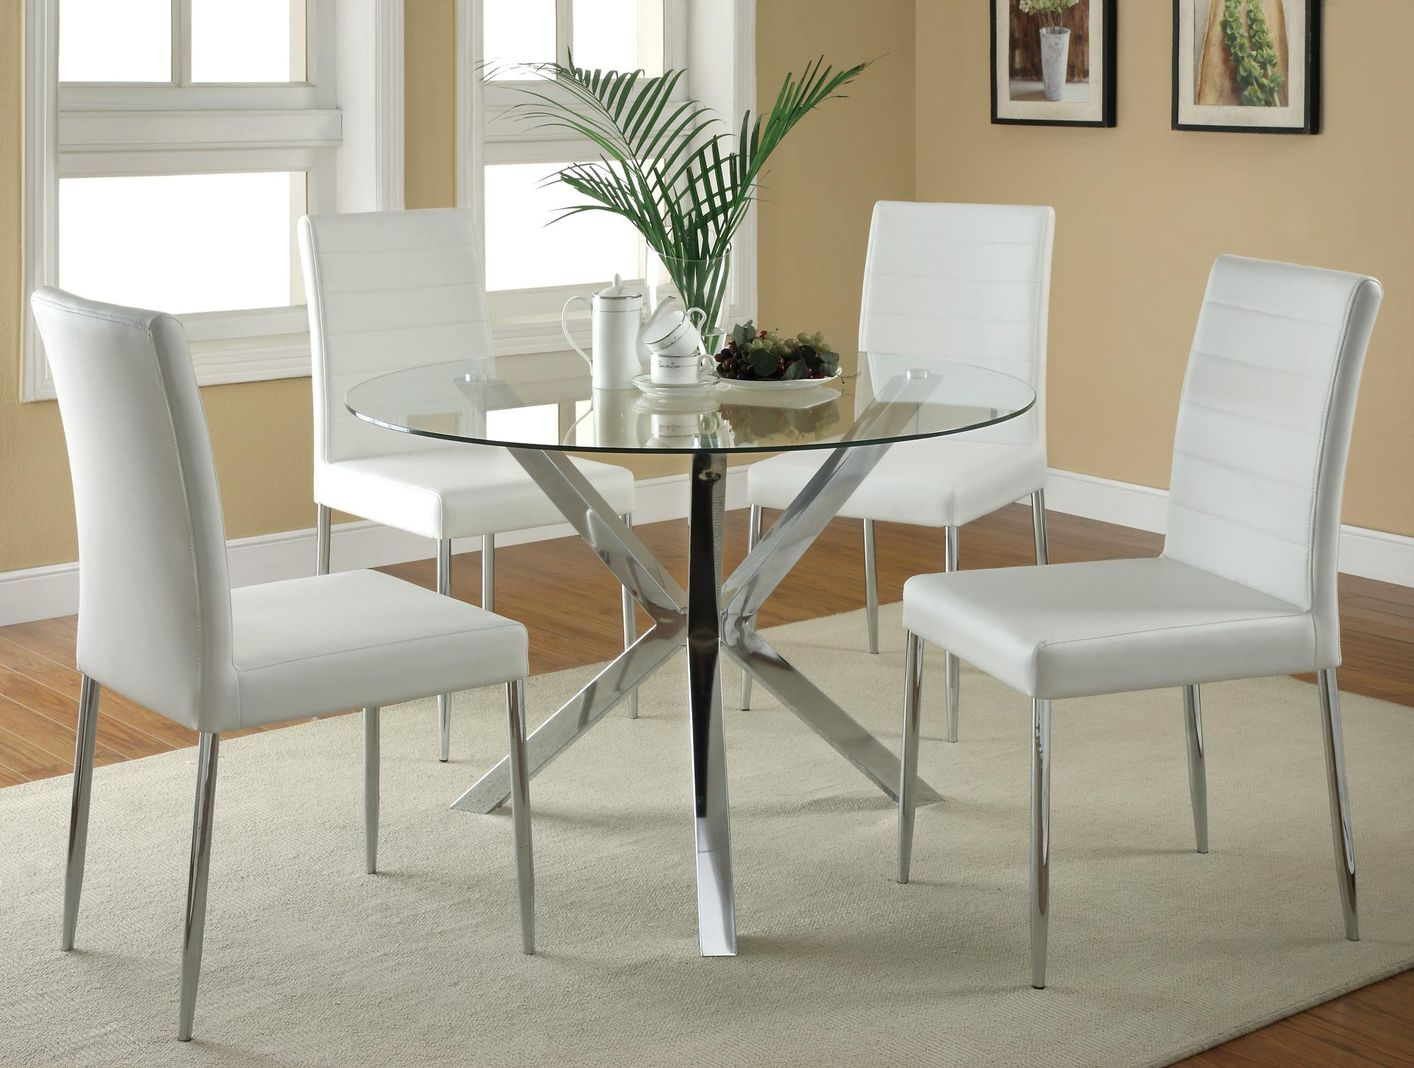 White metal dining